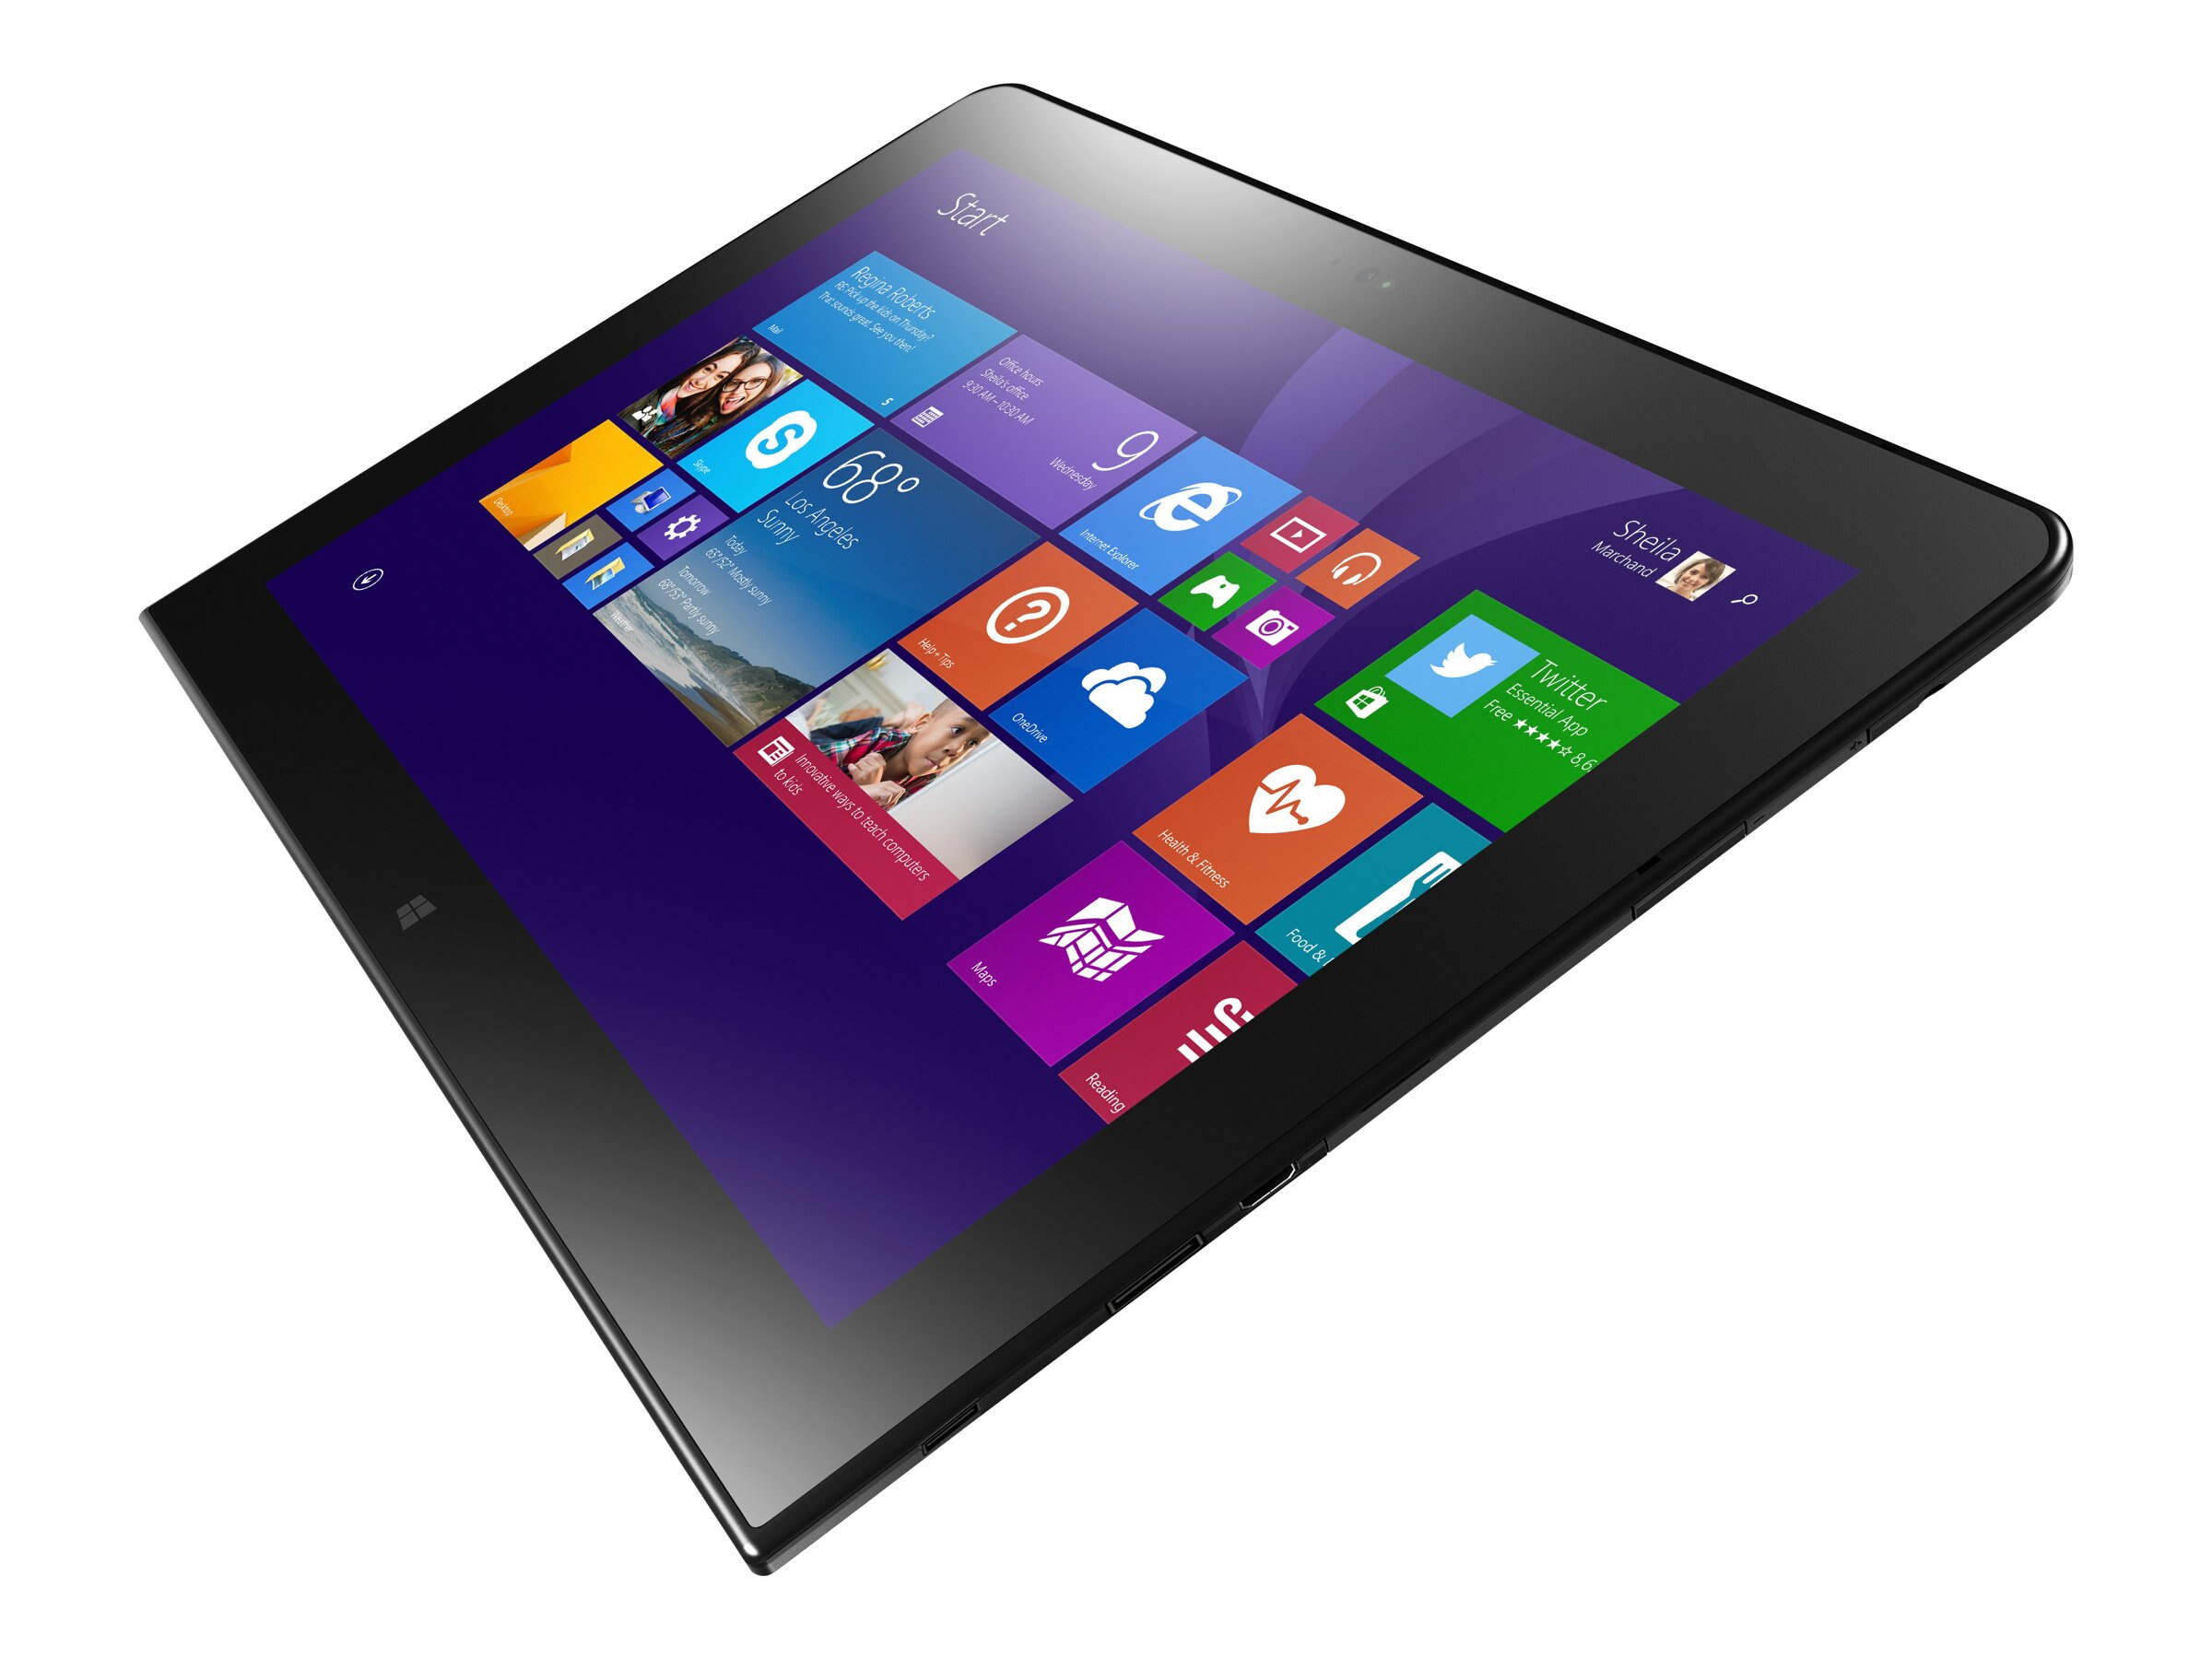 Lenovo TopSeller ThinkPad 10 1.6GHz processor Windows 8.1 Small Screen Touch (SST)